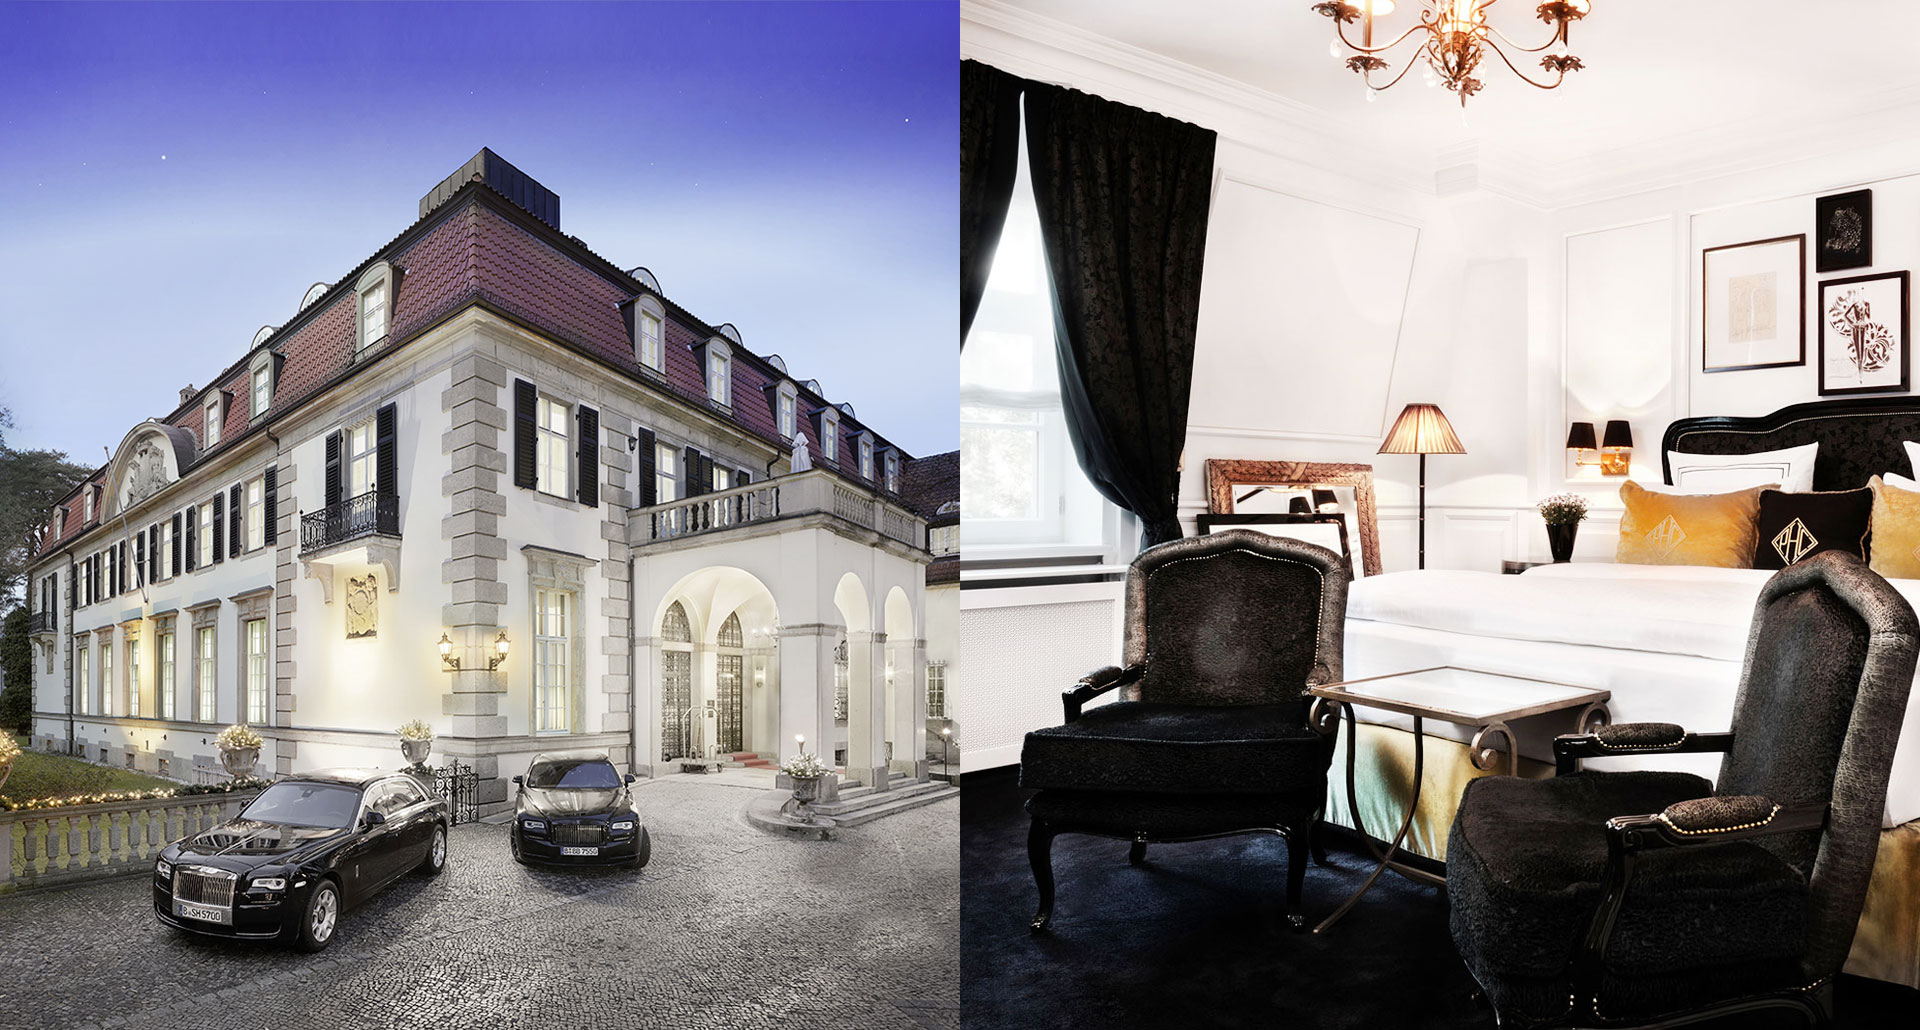 Patrick Hellmann Schlosshotel boutique hotel in Berlin, Germany